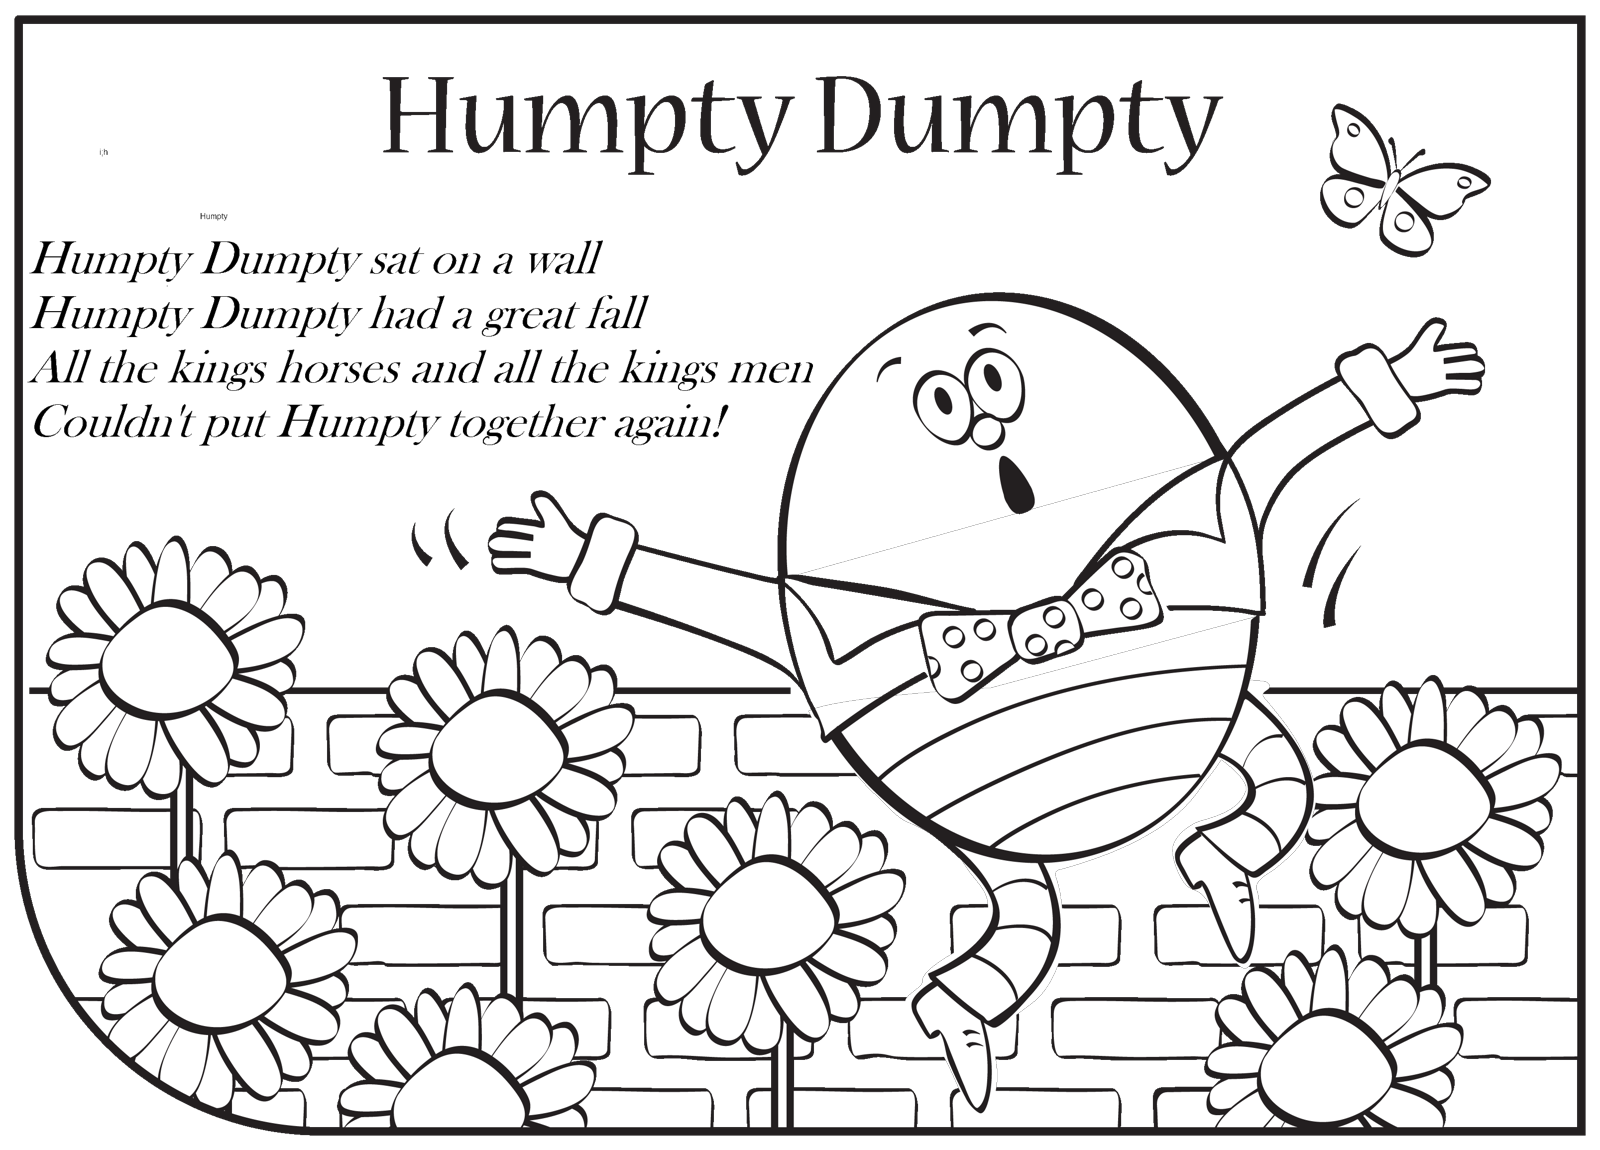 Colouring pages james and the giant peach - Humpty Dumpty Coloring Page